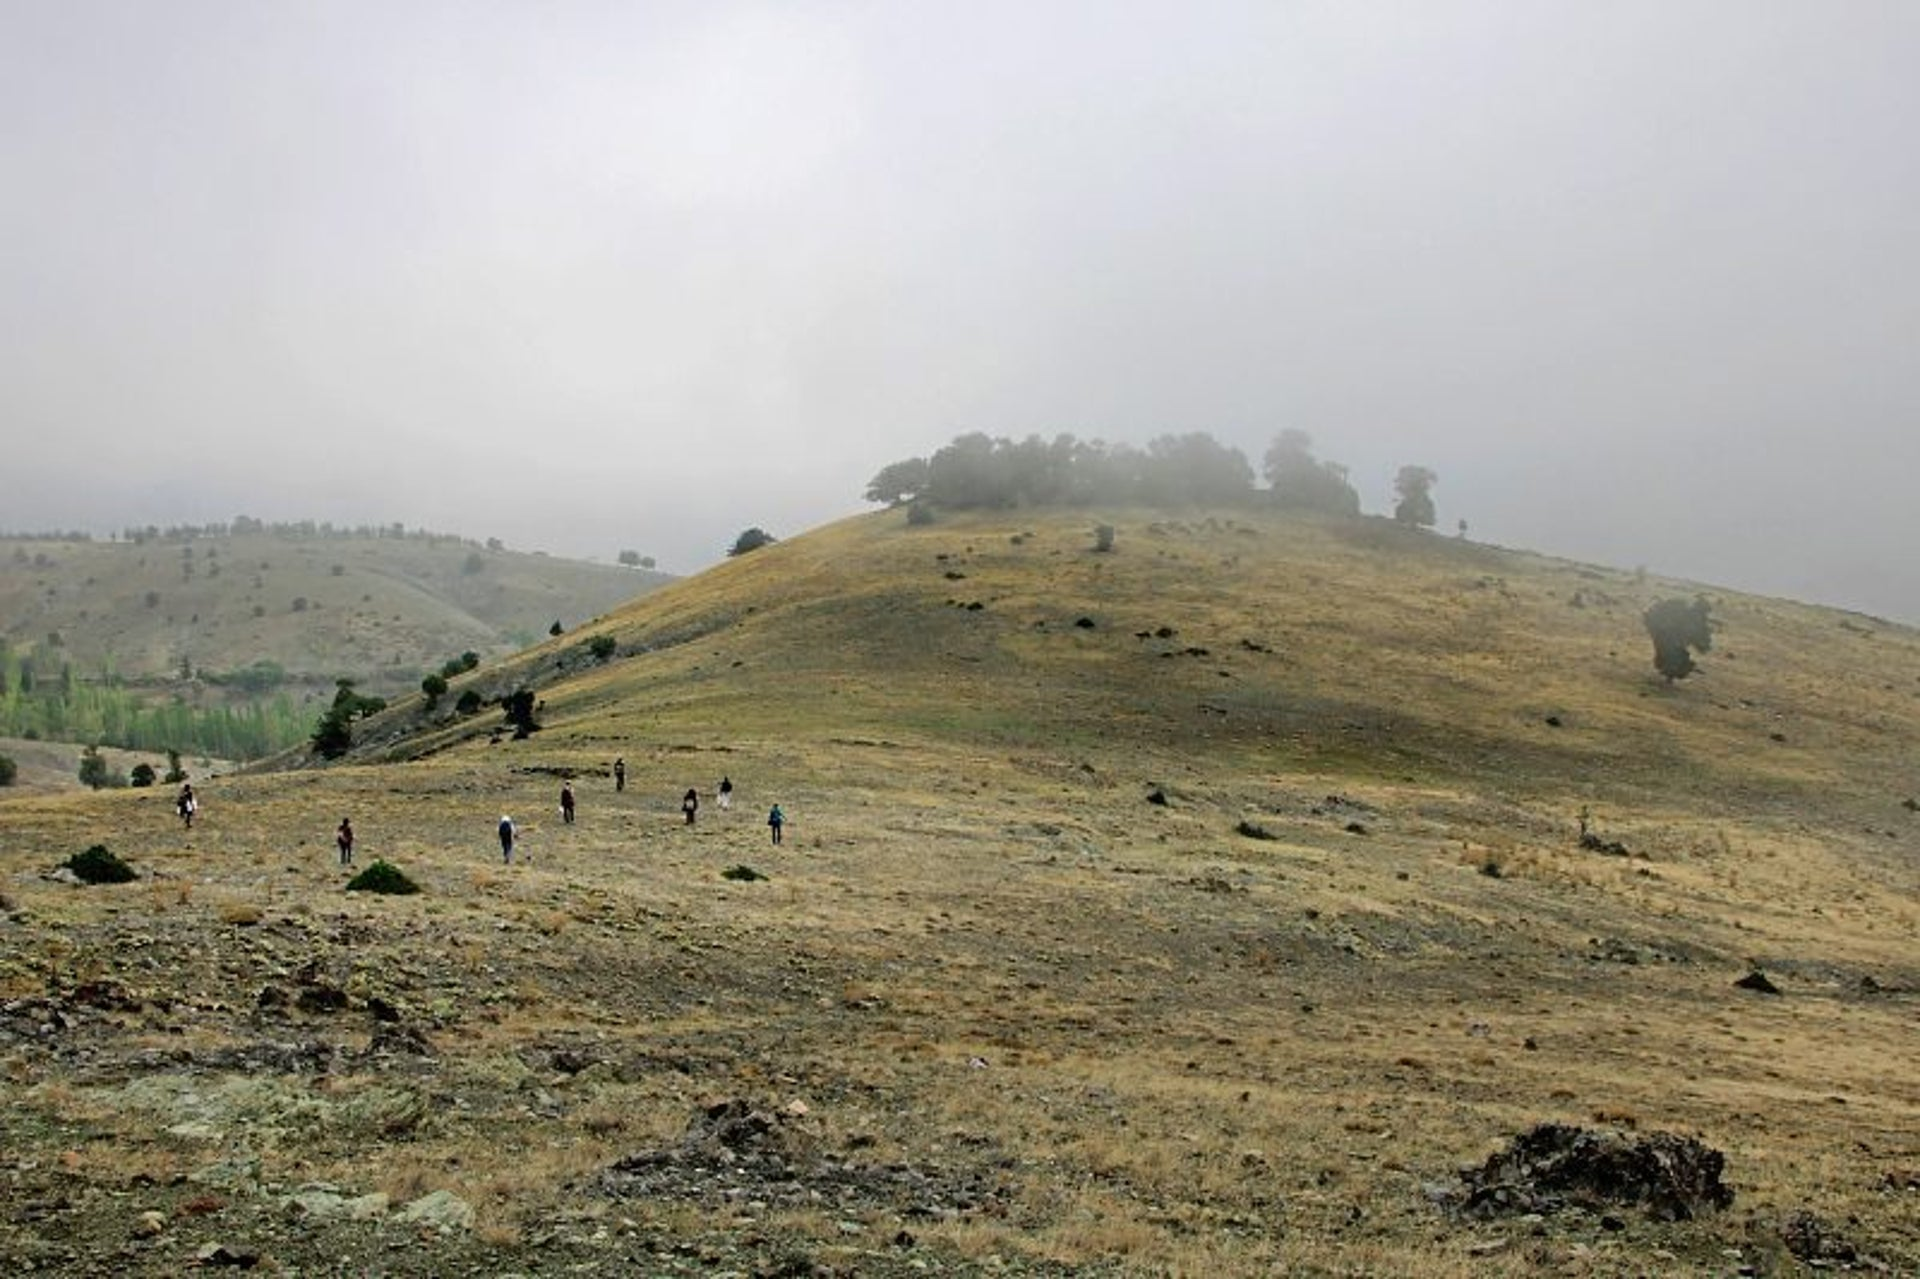 Survey on Asar Tepe: At least part of this belonged to the Calpurnii estate. Here the remains of pottery production were found. The photo shows greenish hilly scenery and some fog partly obscuring the sparse trees on the hill.